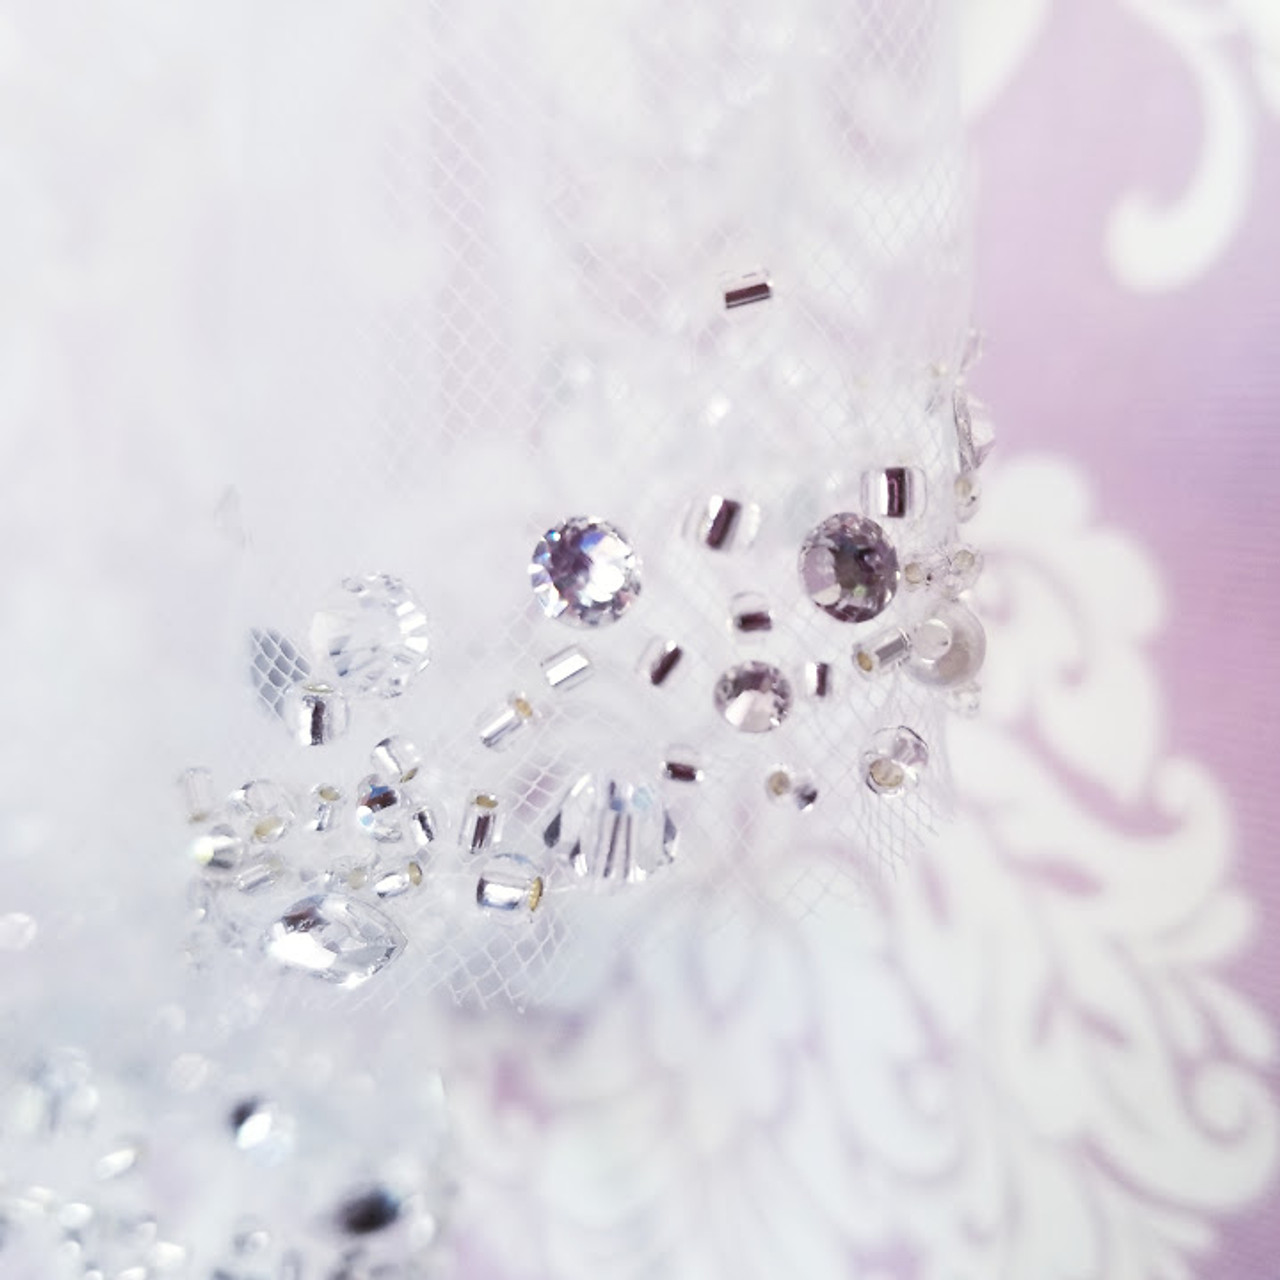 Cathedral Beaded Veil Bugles Beads Sequins /& Beads 120 Inches Cathedral Heavy Beaded Scallop Edge Cathedral Beaded Veil Fast Ship